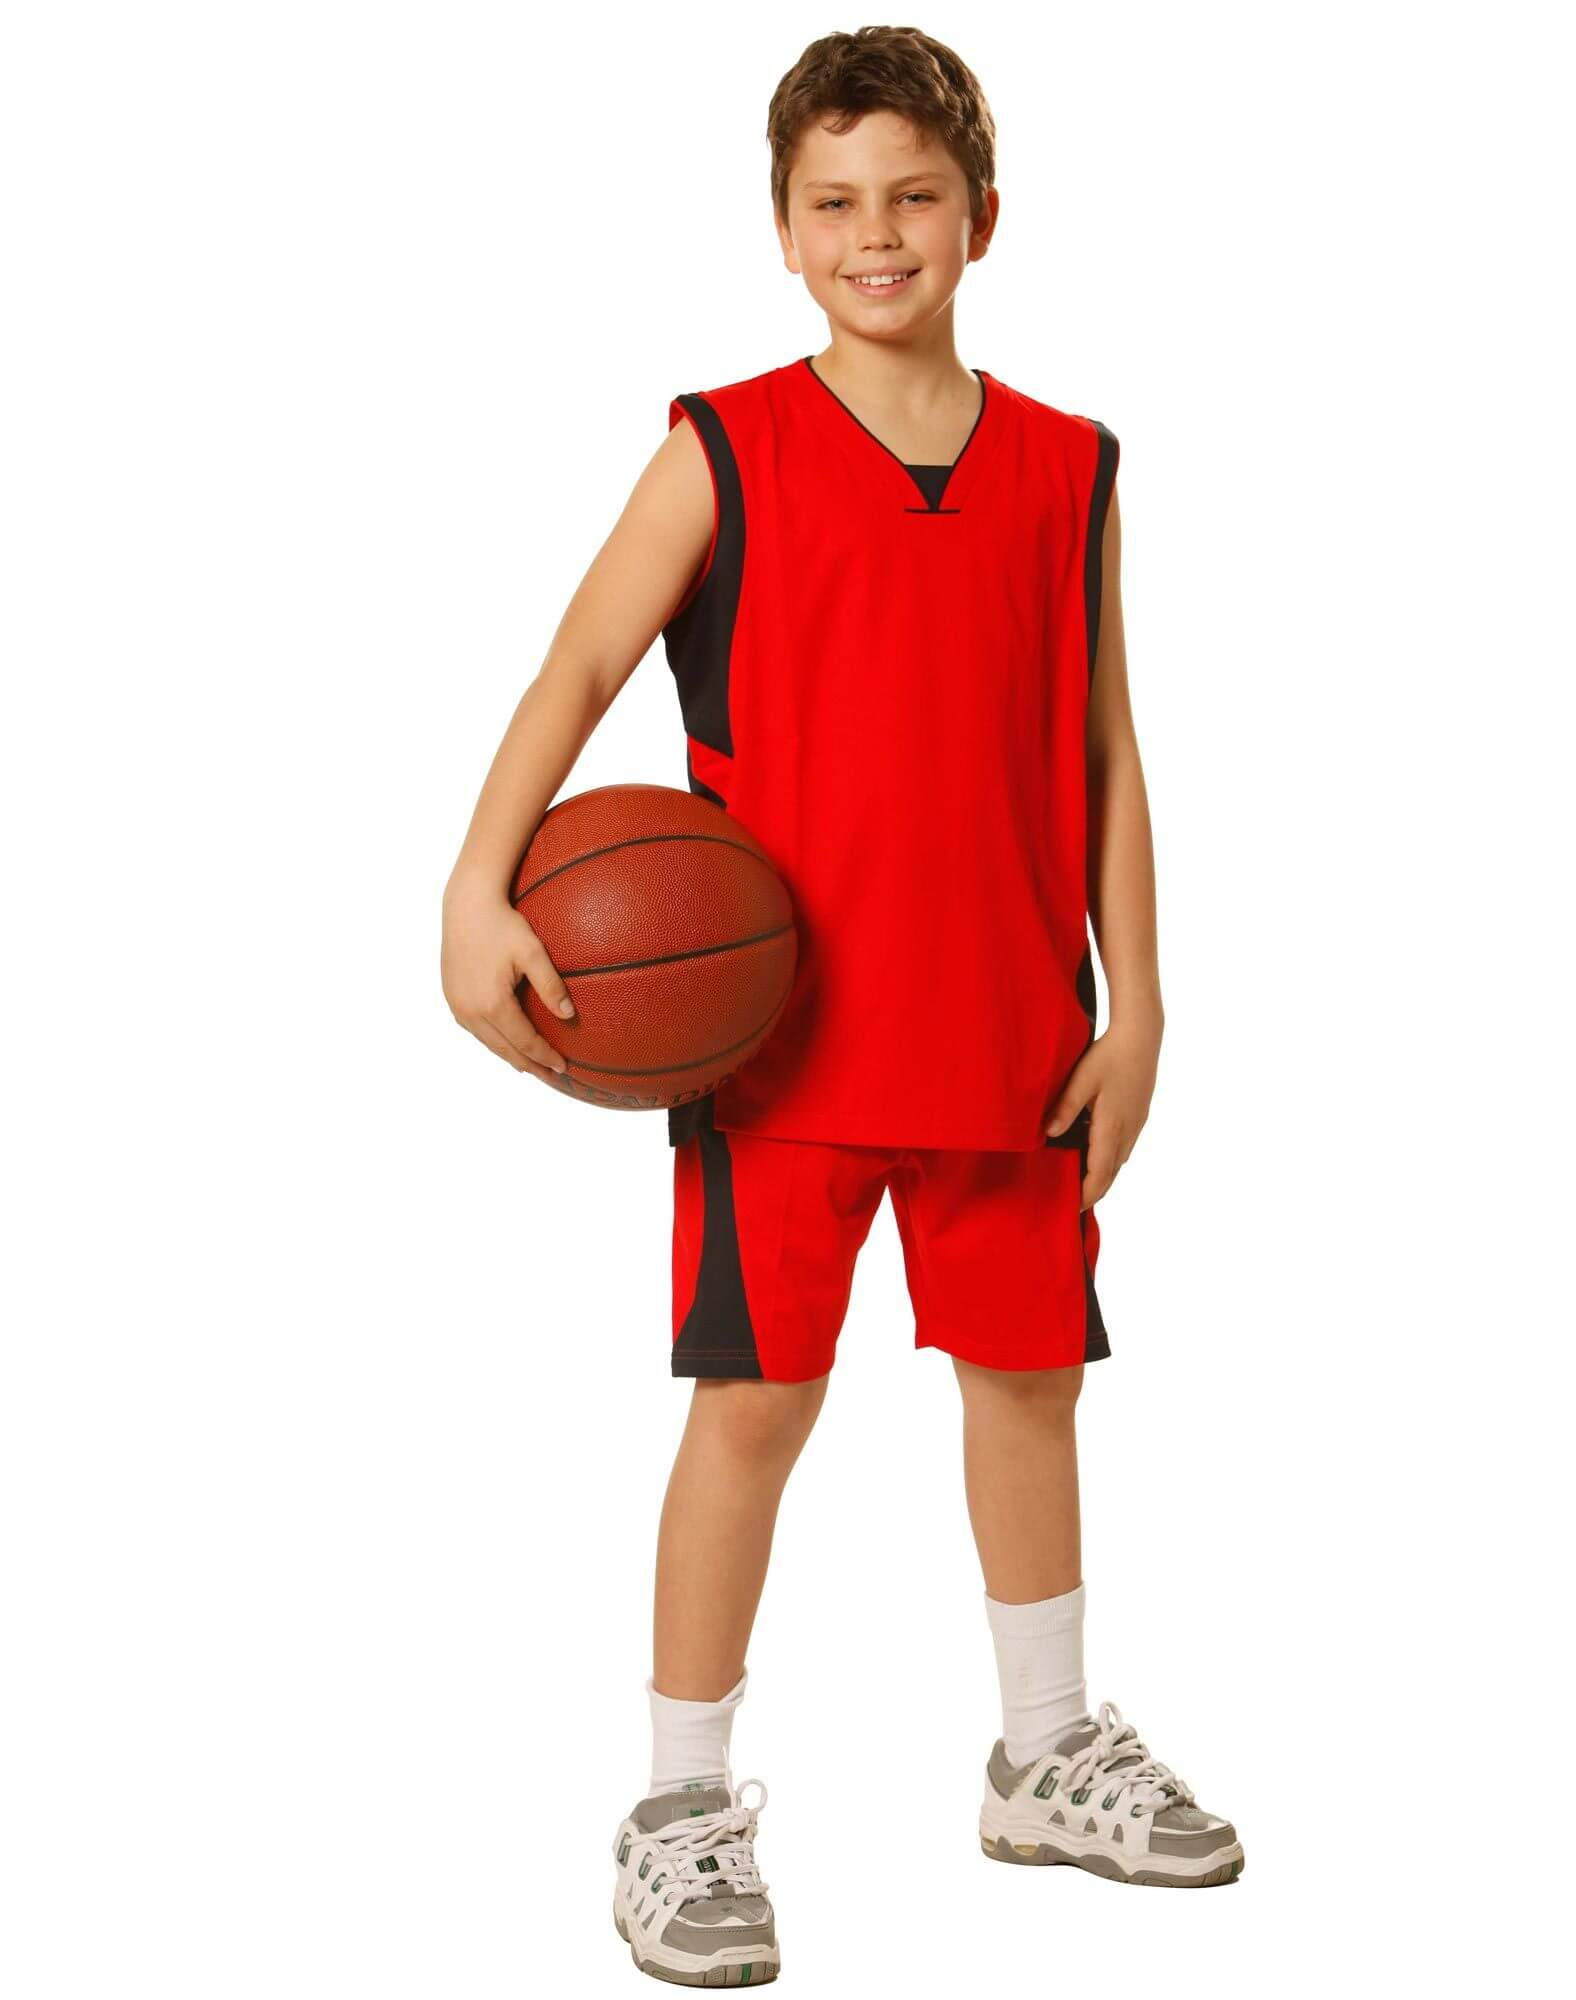 Kids Basketball Jerseys Manufacturers in Rajkot